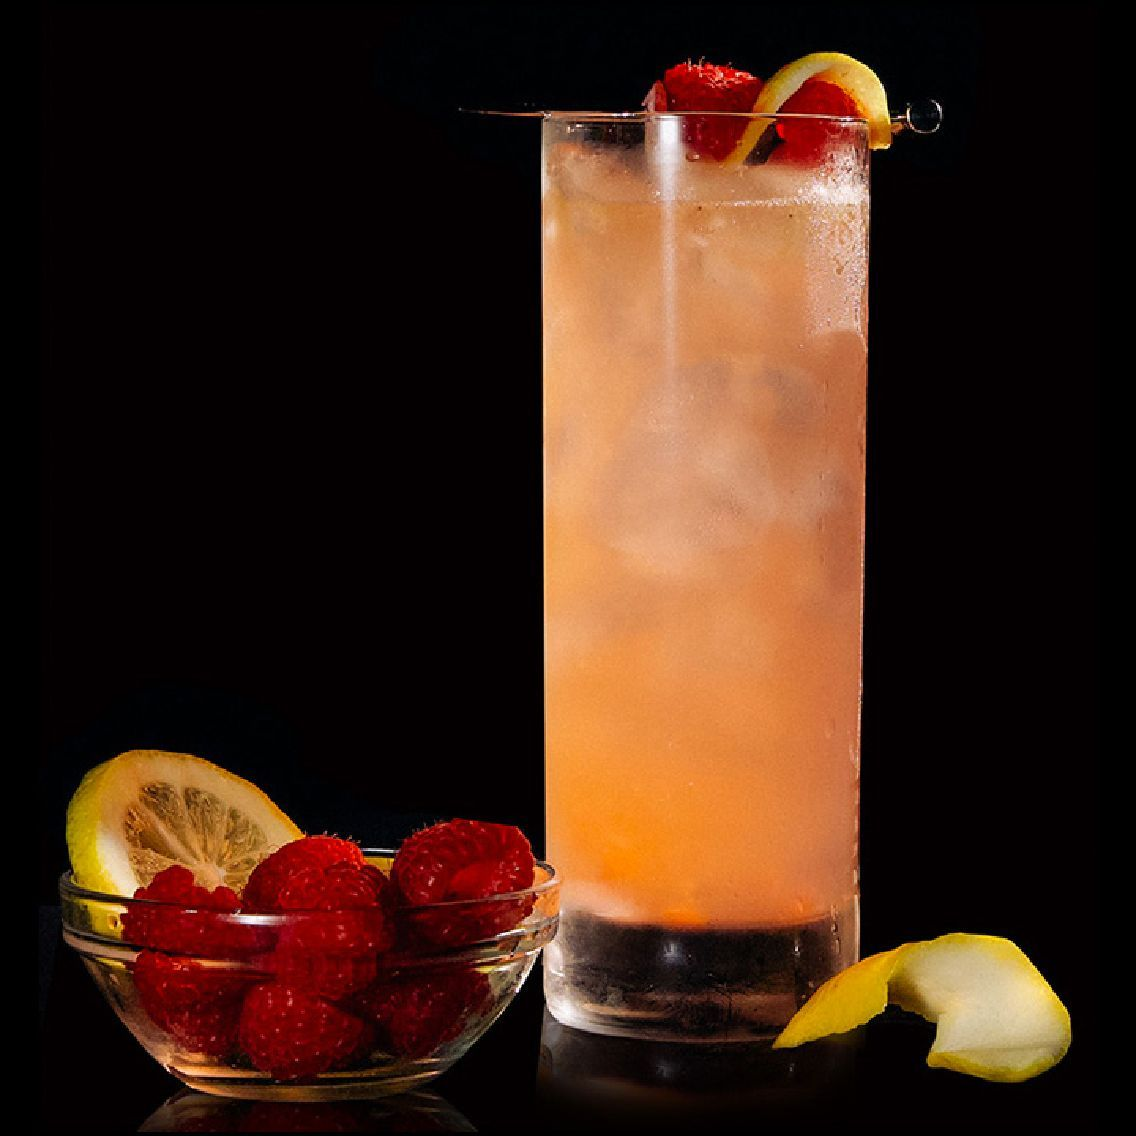 A delicious raspberry lemonade infused with the complex flavor of Gothic Gin.